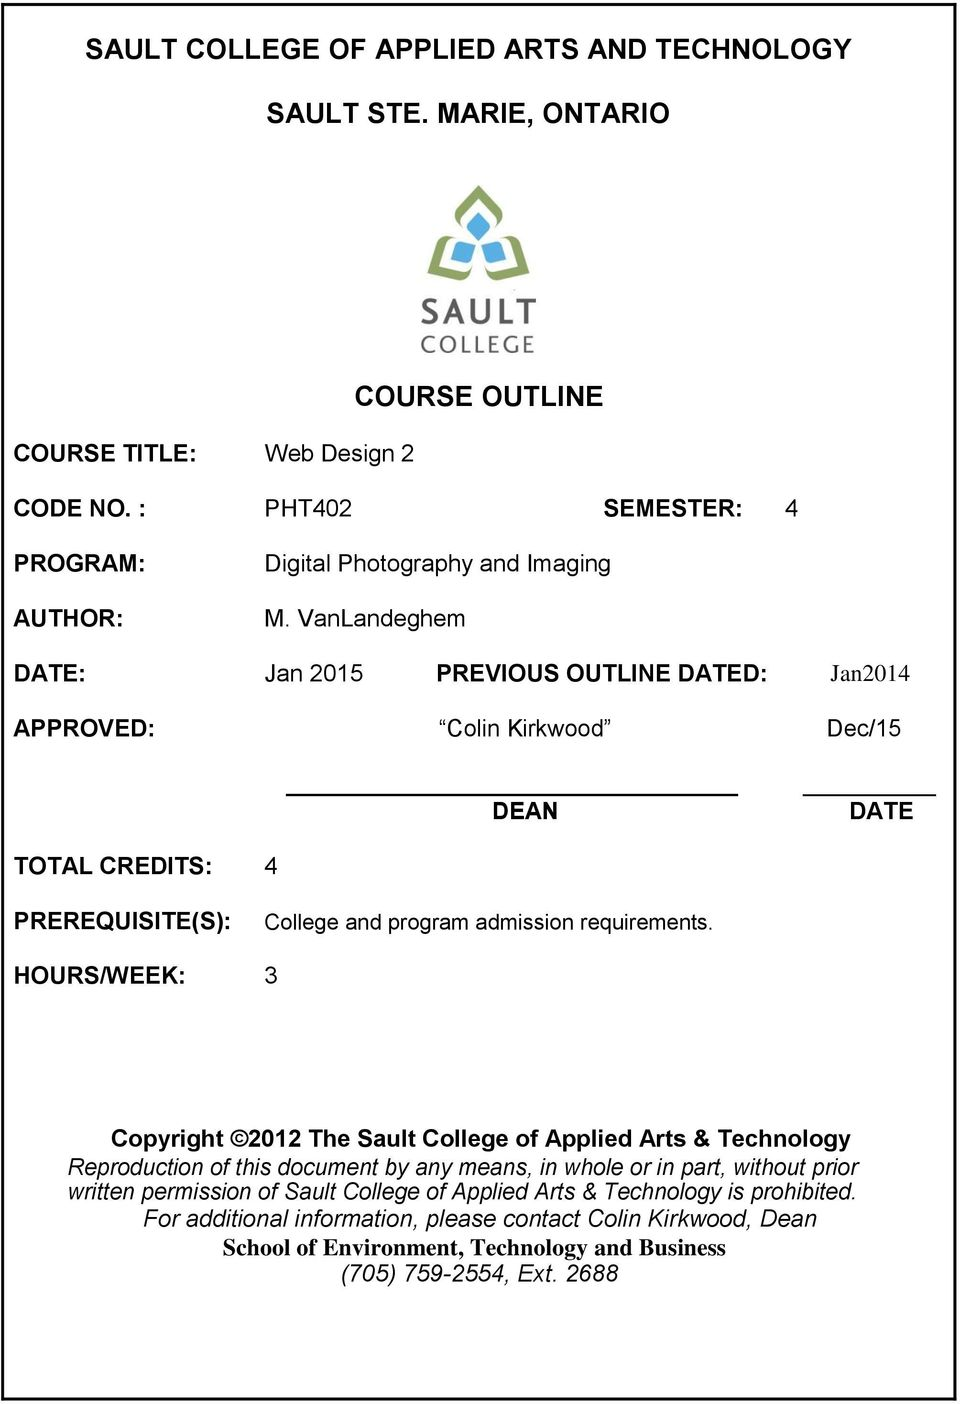 Sault College Of Applied Arts And Technology Sault Ste Marie Ontario Course Outline Pdf Free Download